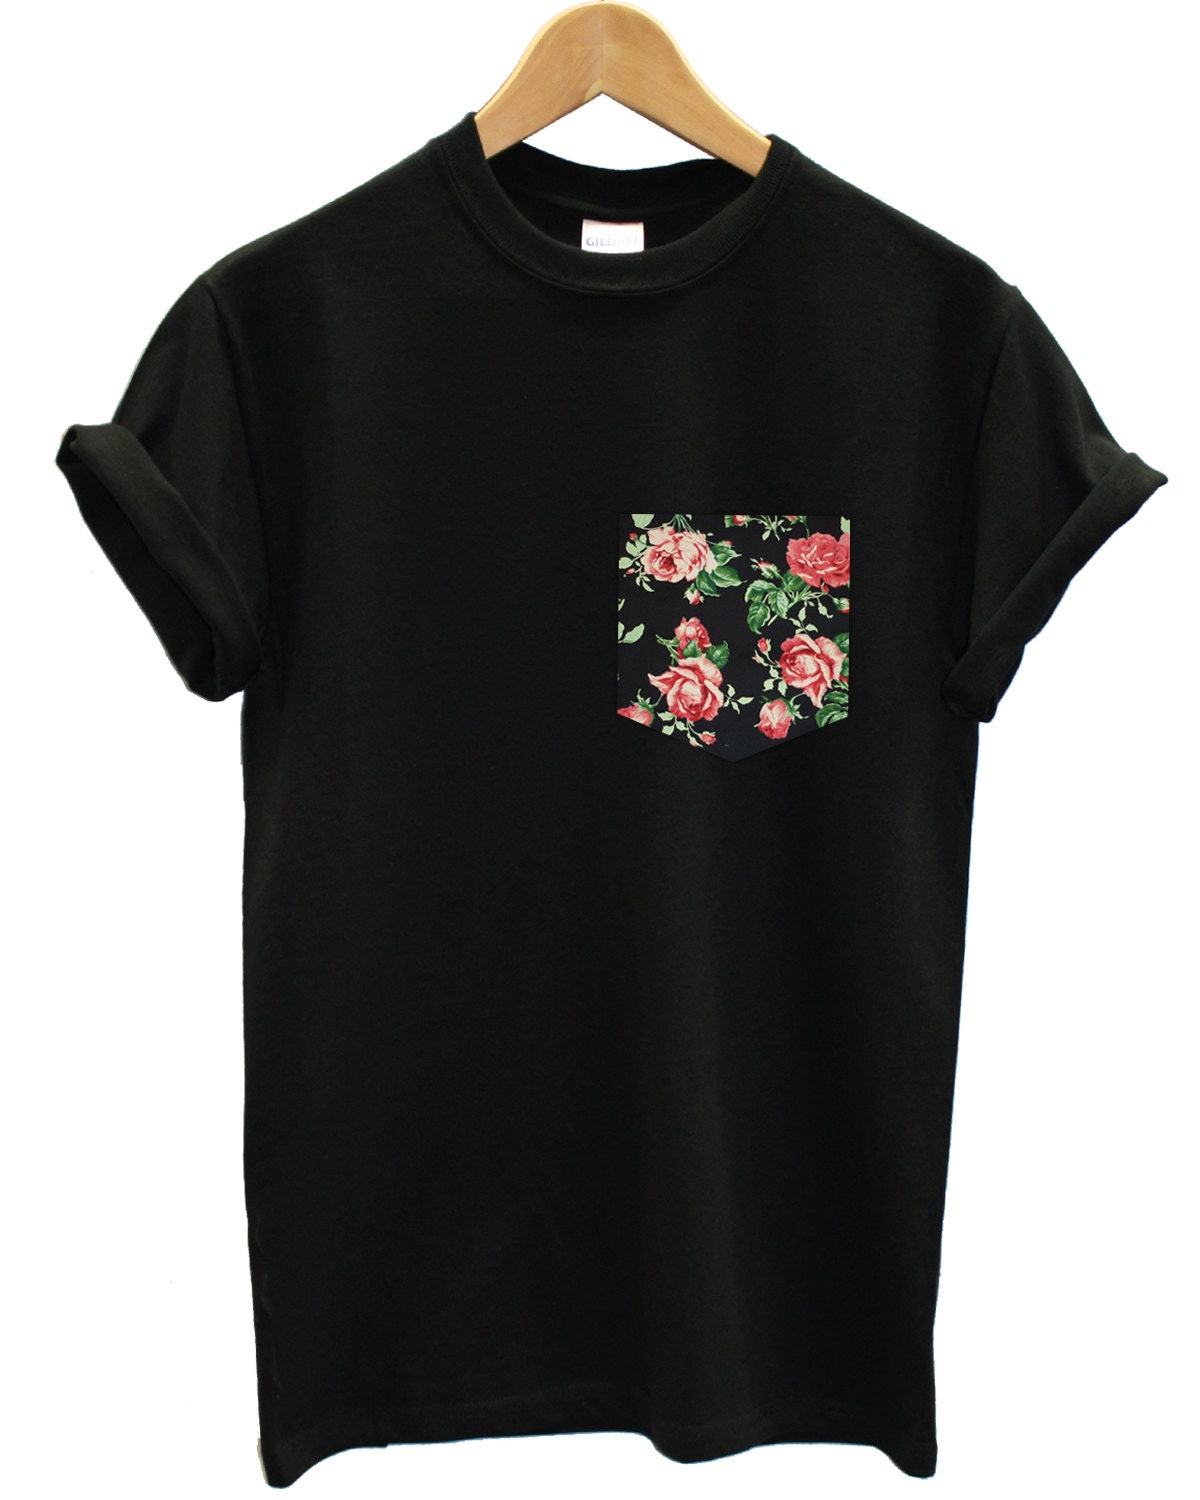 Real stitched red black vintage rose floral print pocket Womens black tee shirt